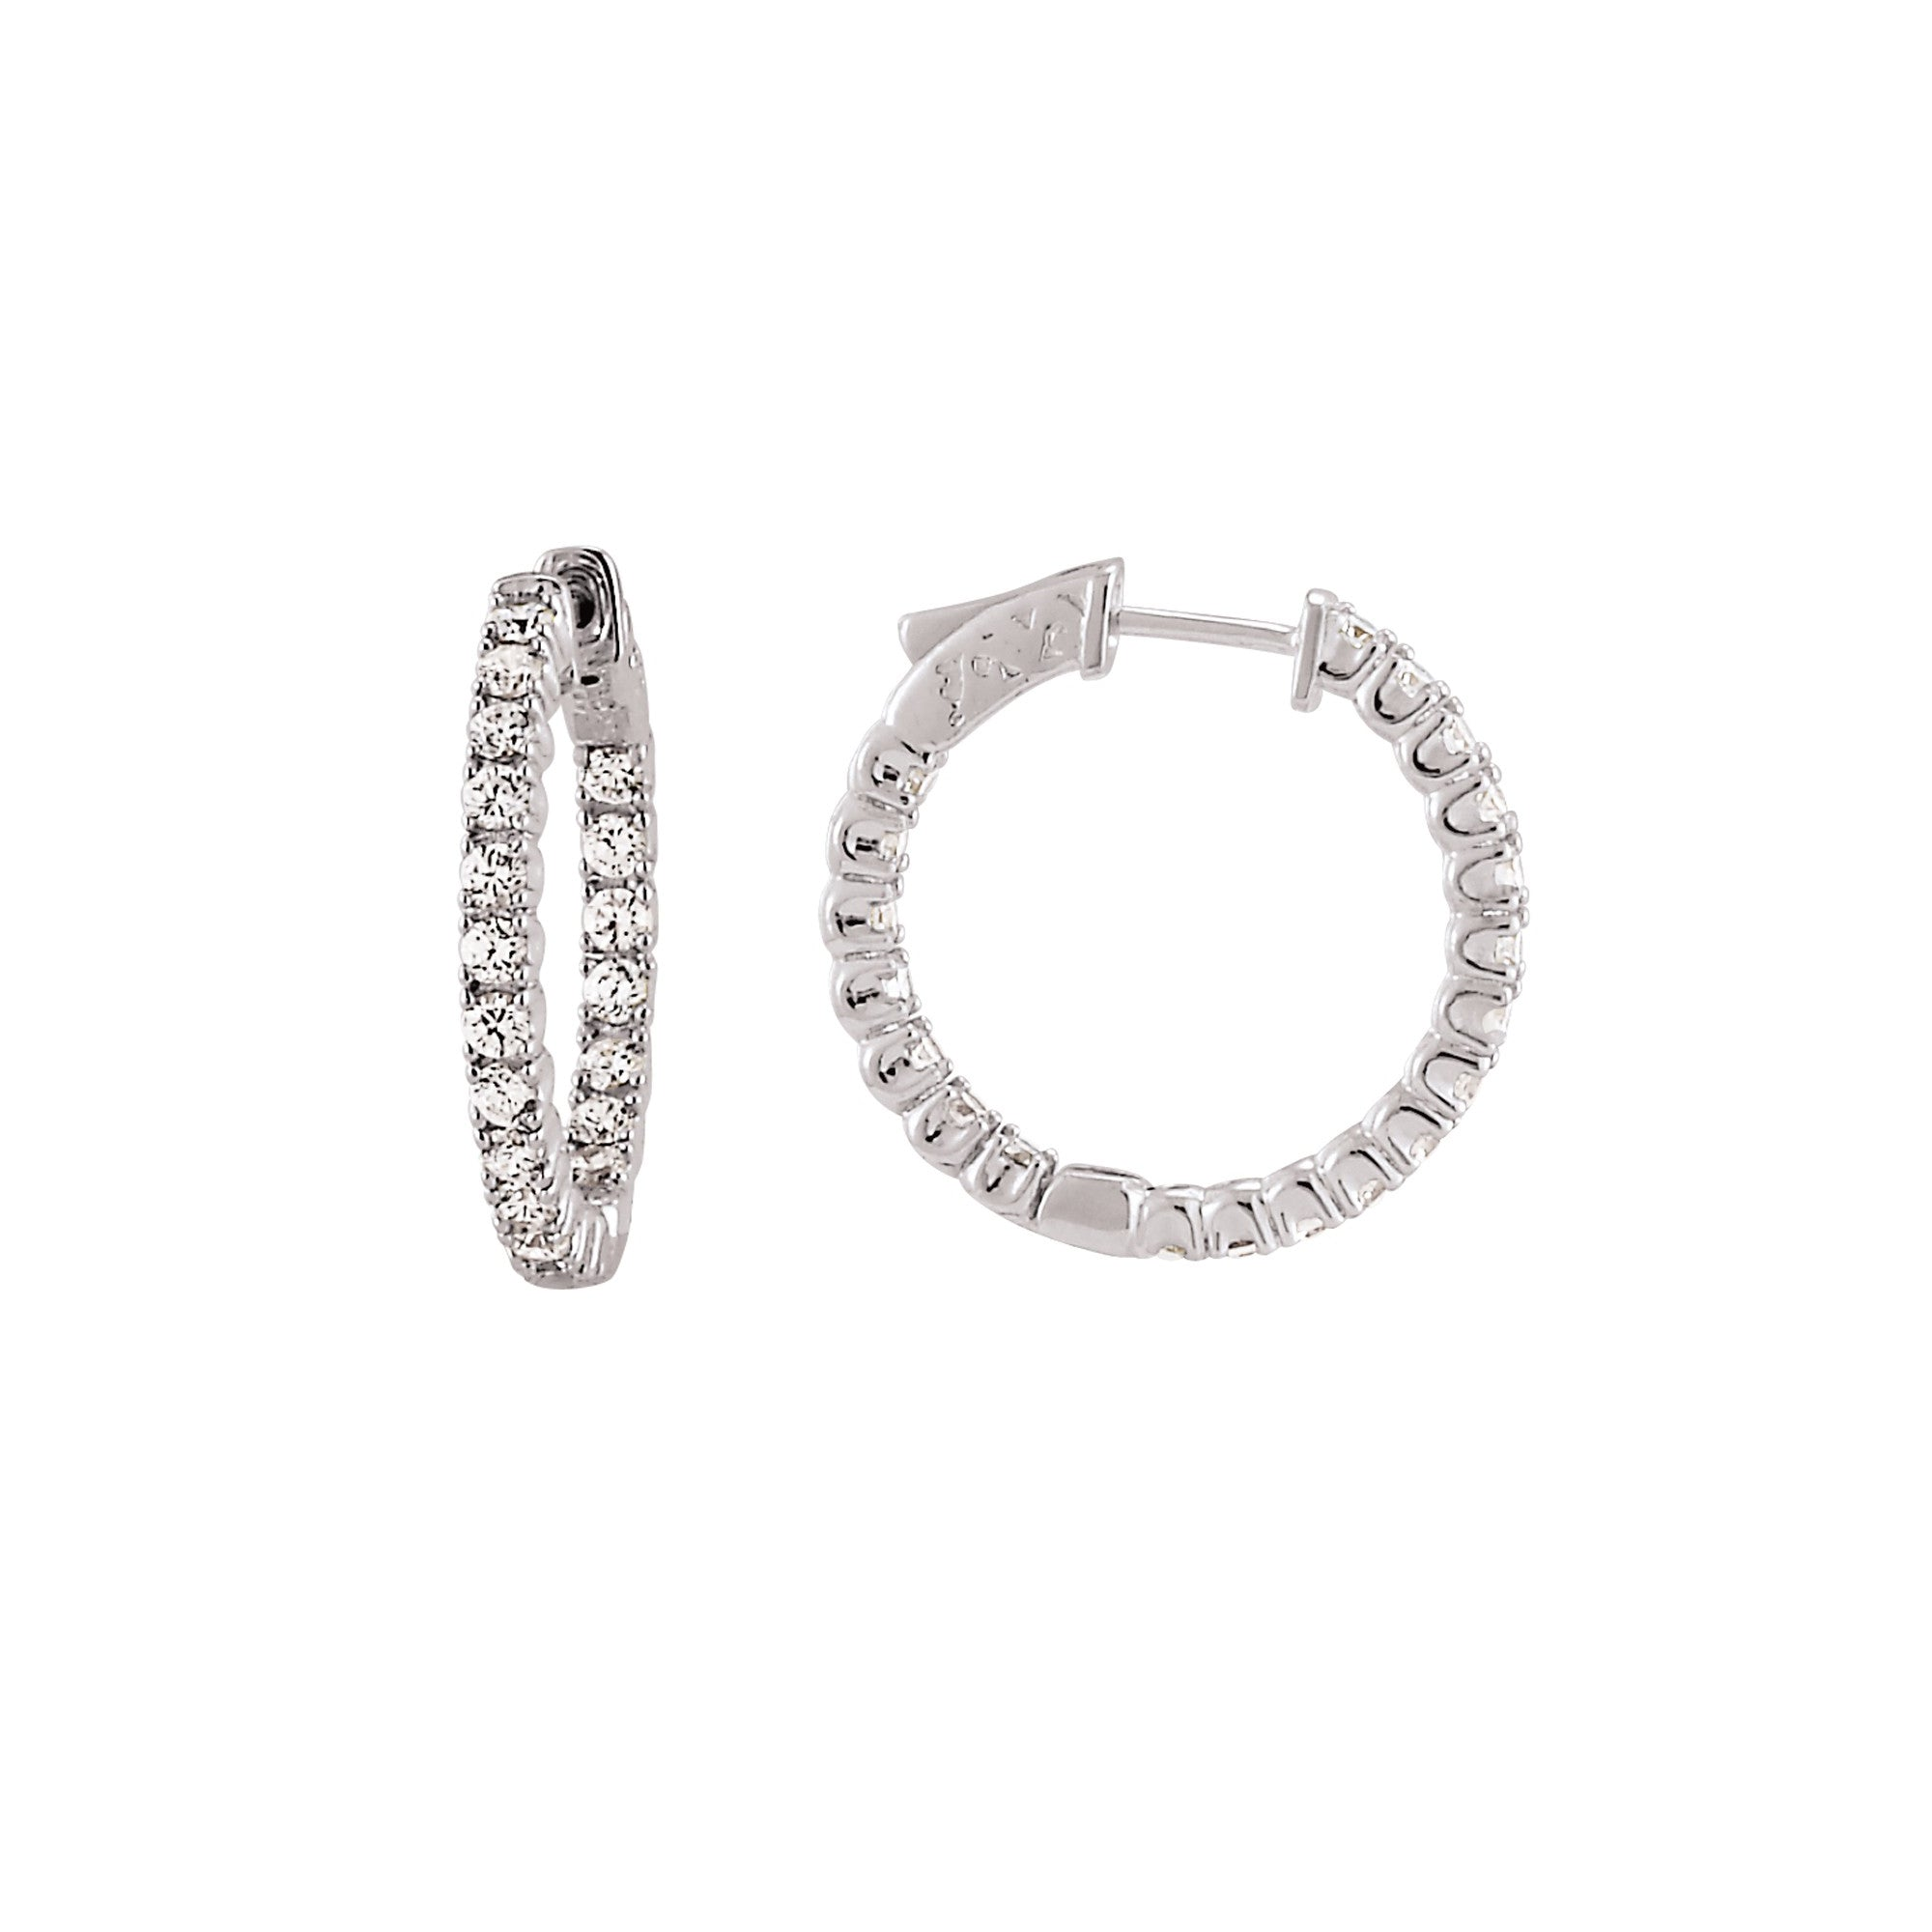 Inside Out CZ Hoops, 1 Inch, Sterling Silver in White Rhodium